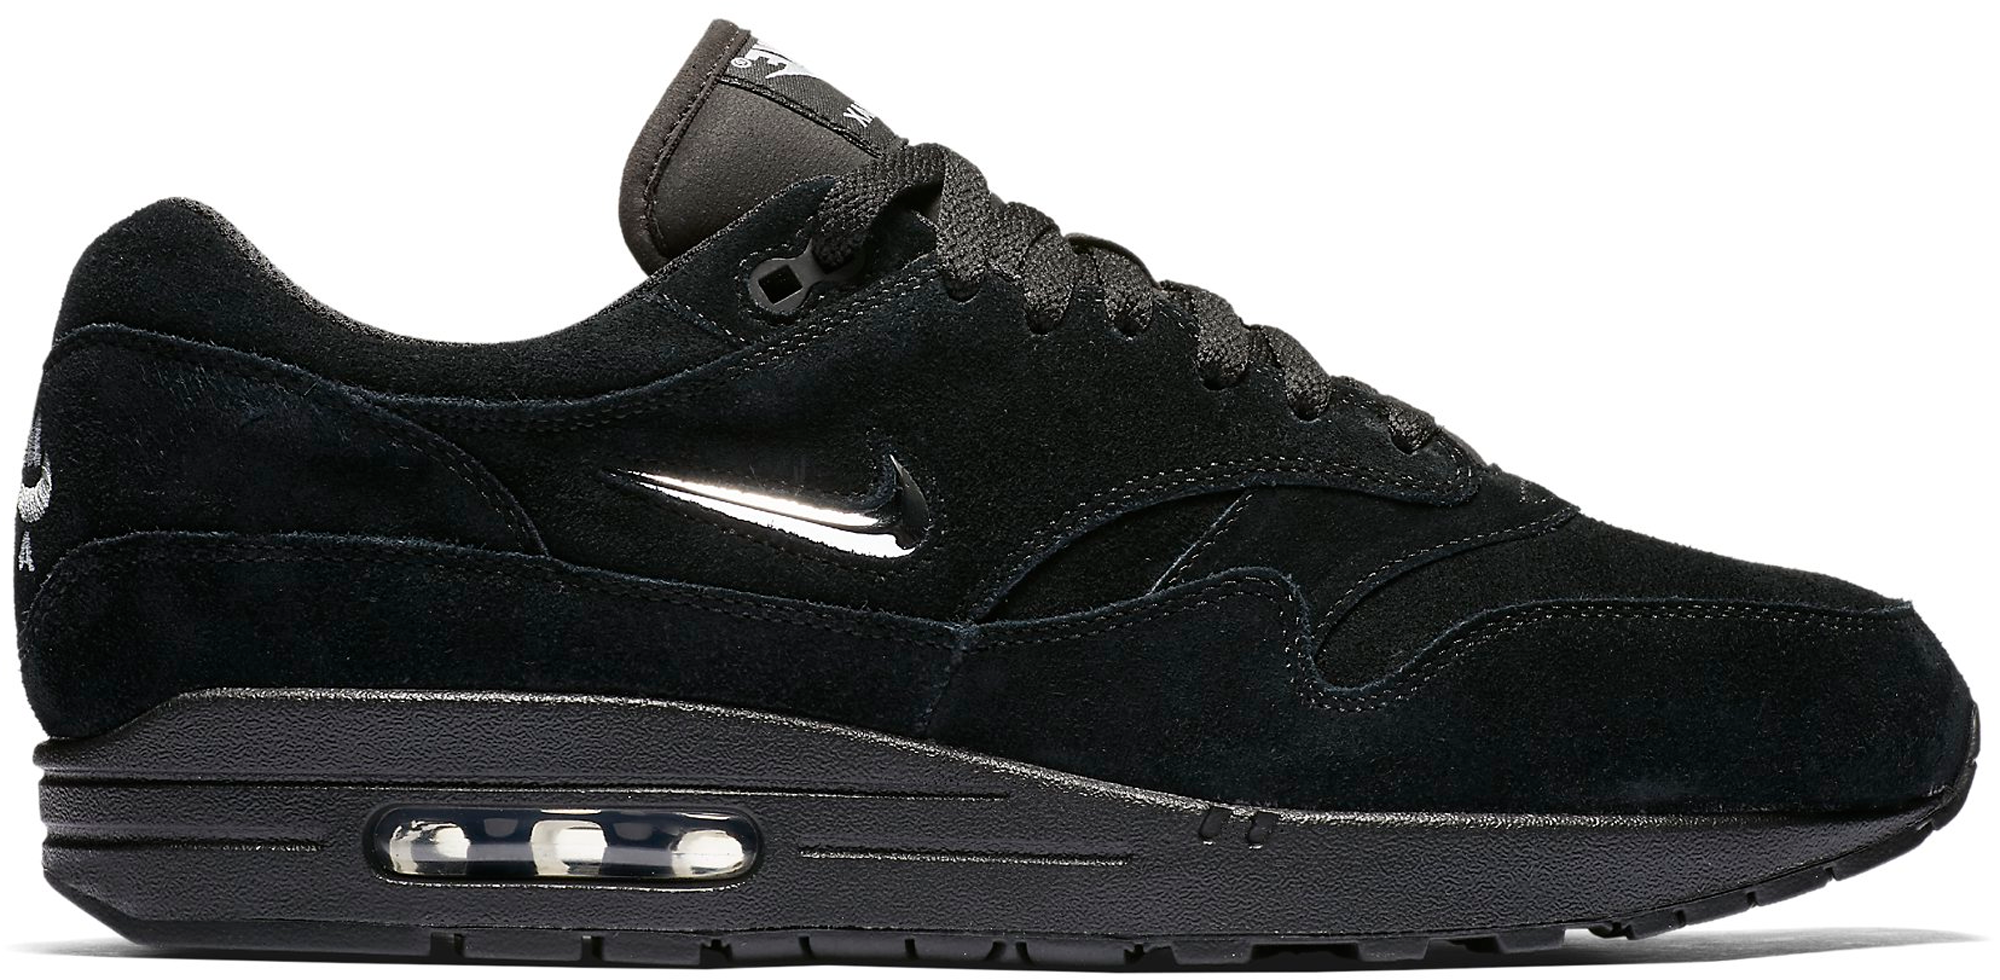 authentic satisfying low priced nike free trainer 3.0 mens training shoes  black 443006 630856 001 e98e8 c3de1  sale air max 1 chrome fc2eb 97673 b18949beed7a